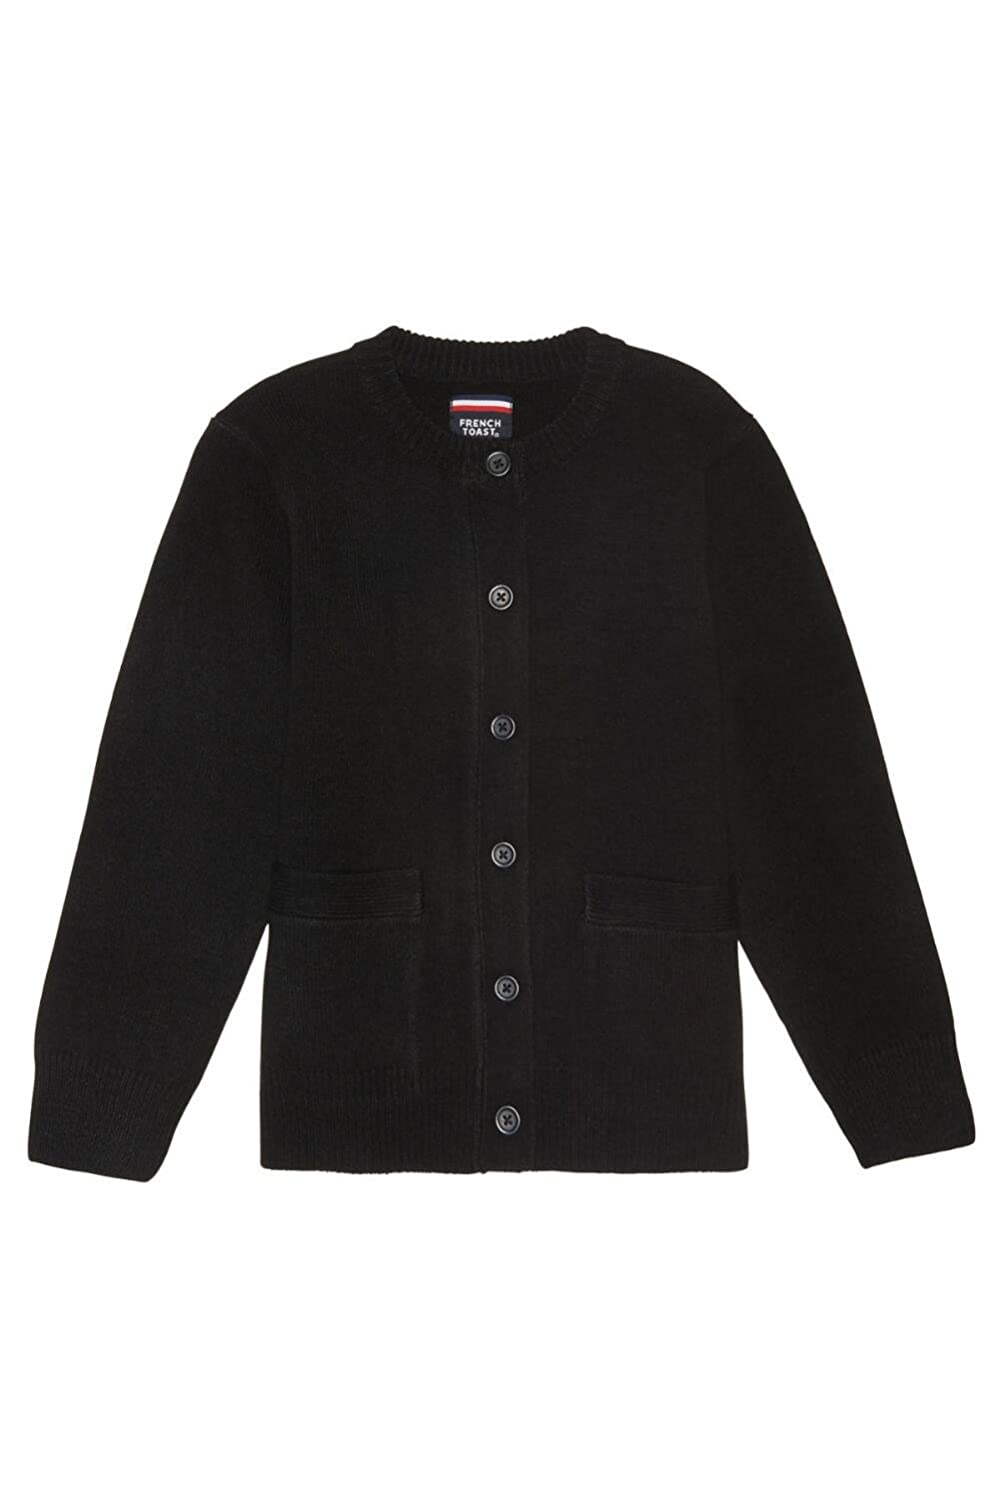 French Toast Anti-Pill Crew Neck Cardigan Sweater(Plus Size Chest Size 42-46) Girls Black 10-1/2 Plus French Toast School Uniforms 1371U BLAC 10.5